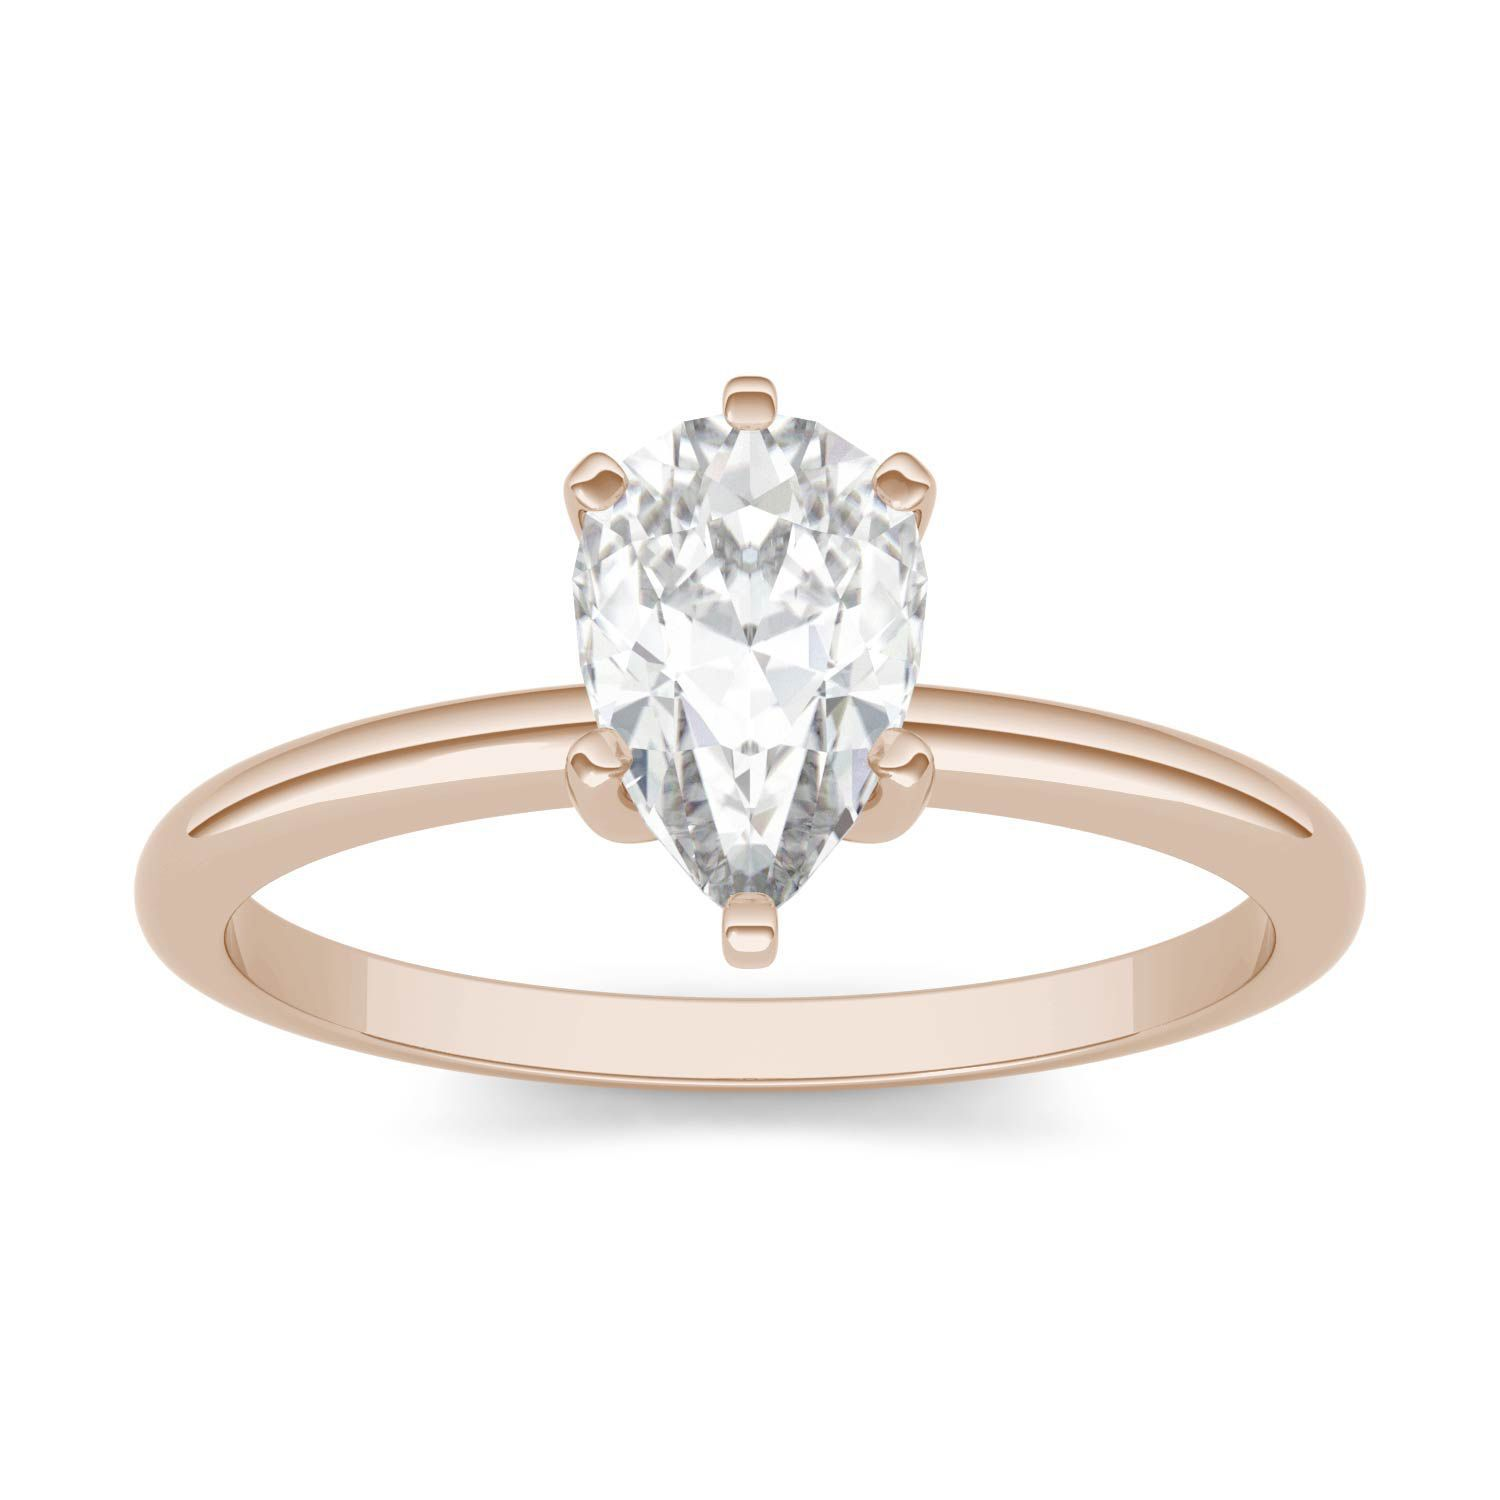 The Shape Craftsmanship And Quality Of This 3 02ct Pear Shaped